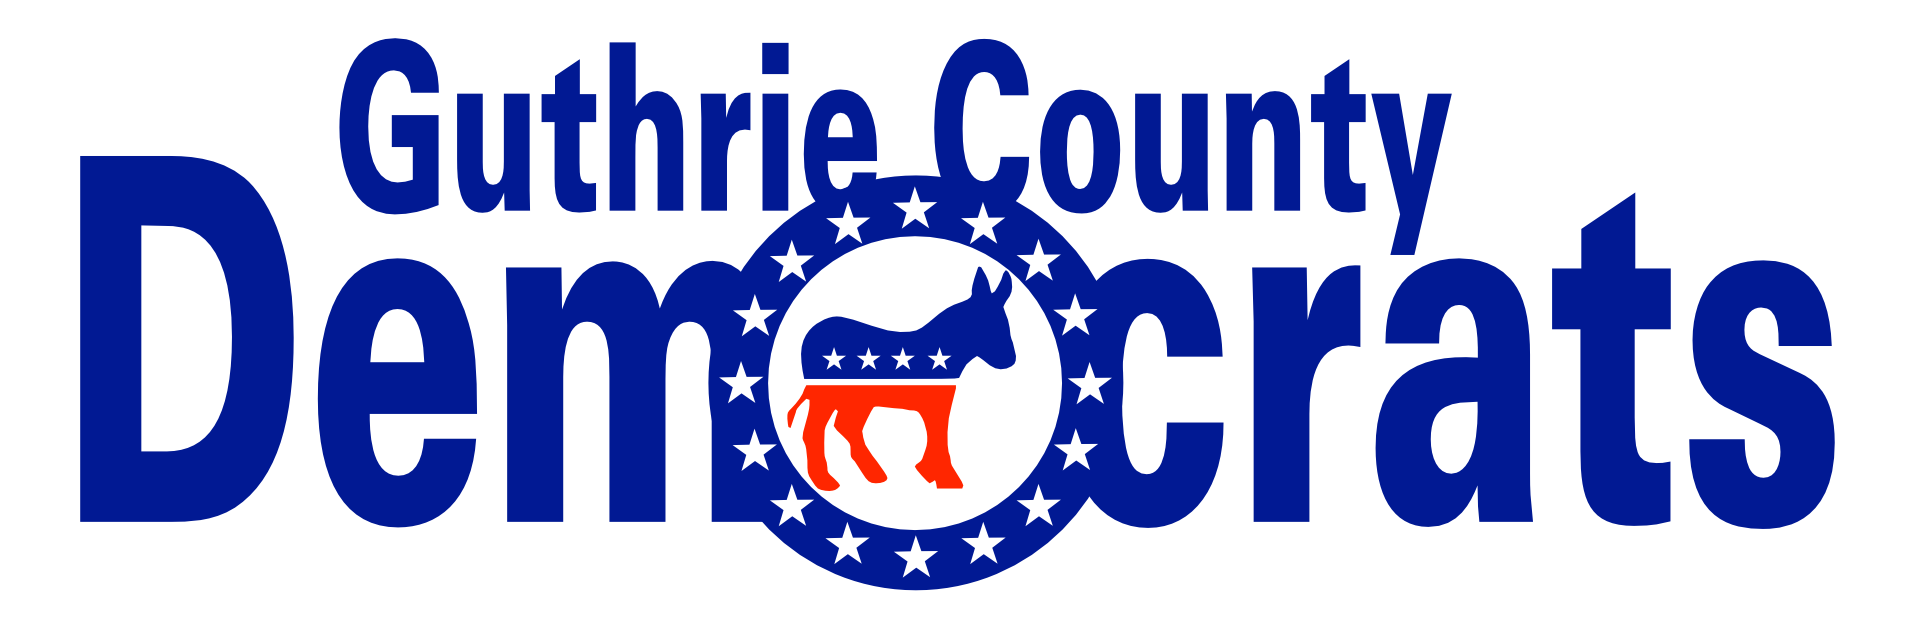 Guthrie County Democratic Party (IA)